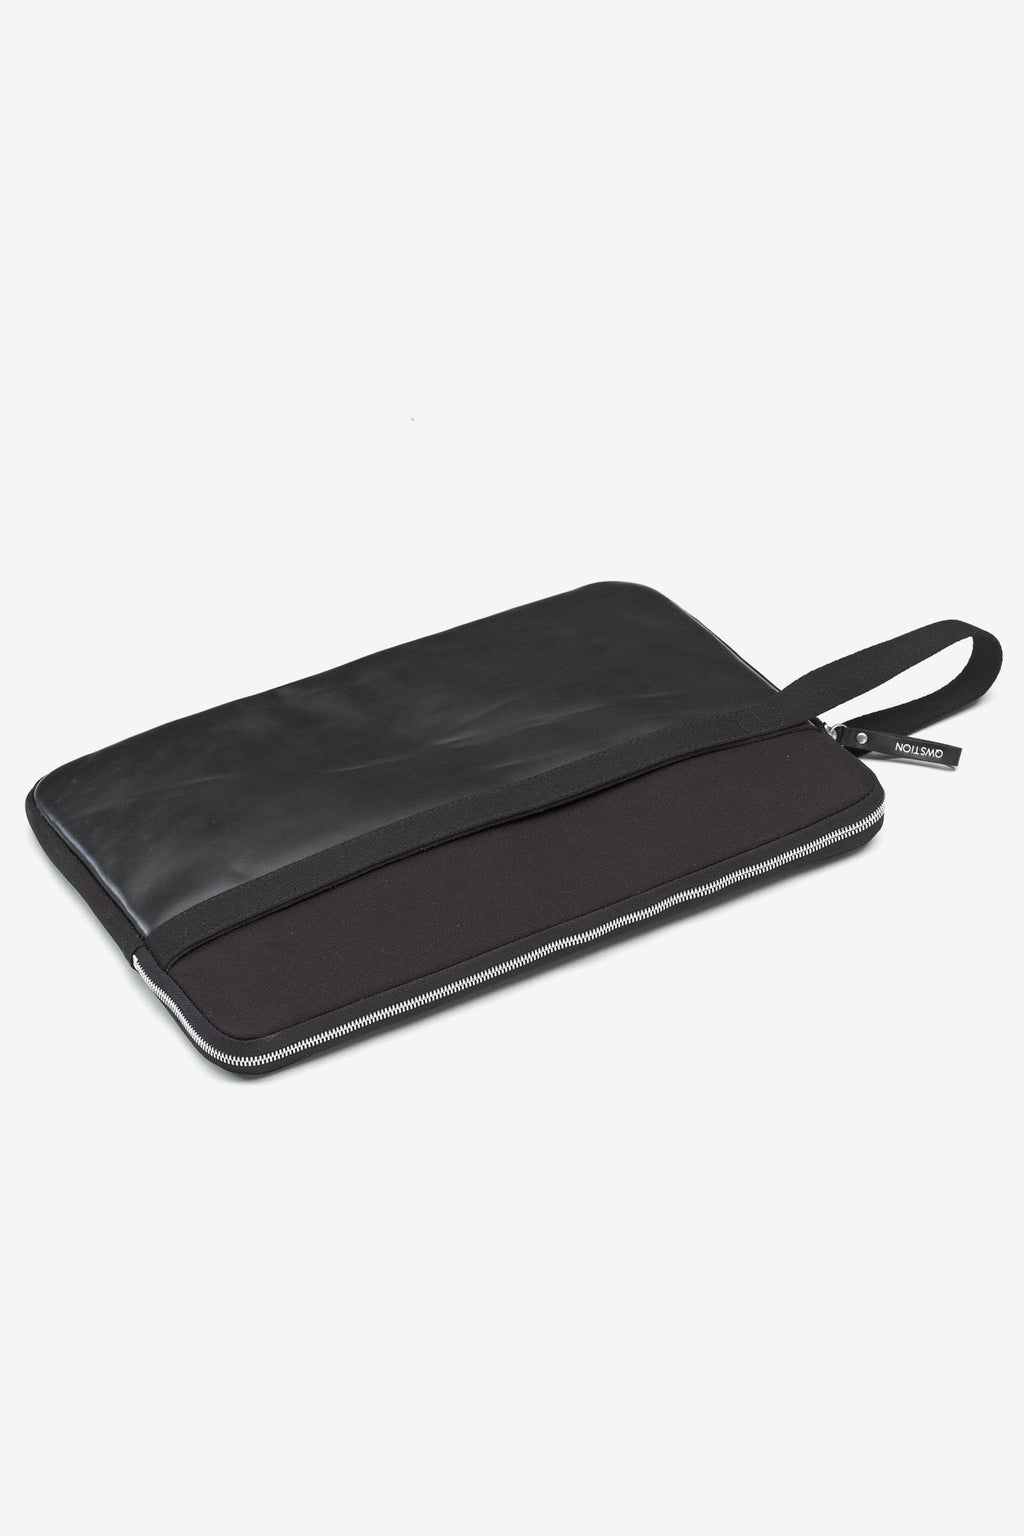 Laptop Sleeve 15 Black Leather, Bags, QWSTION - Six and Sons